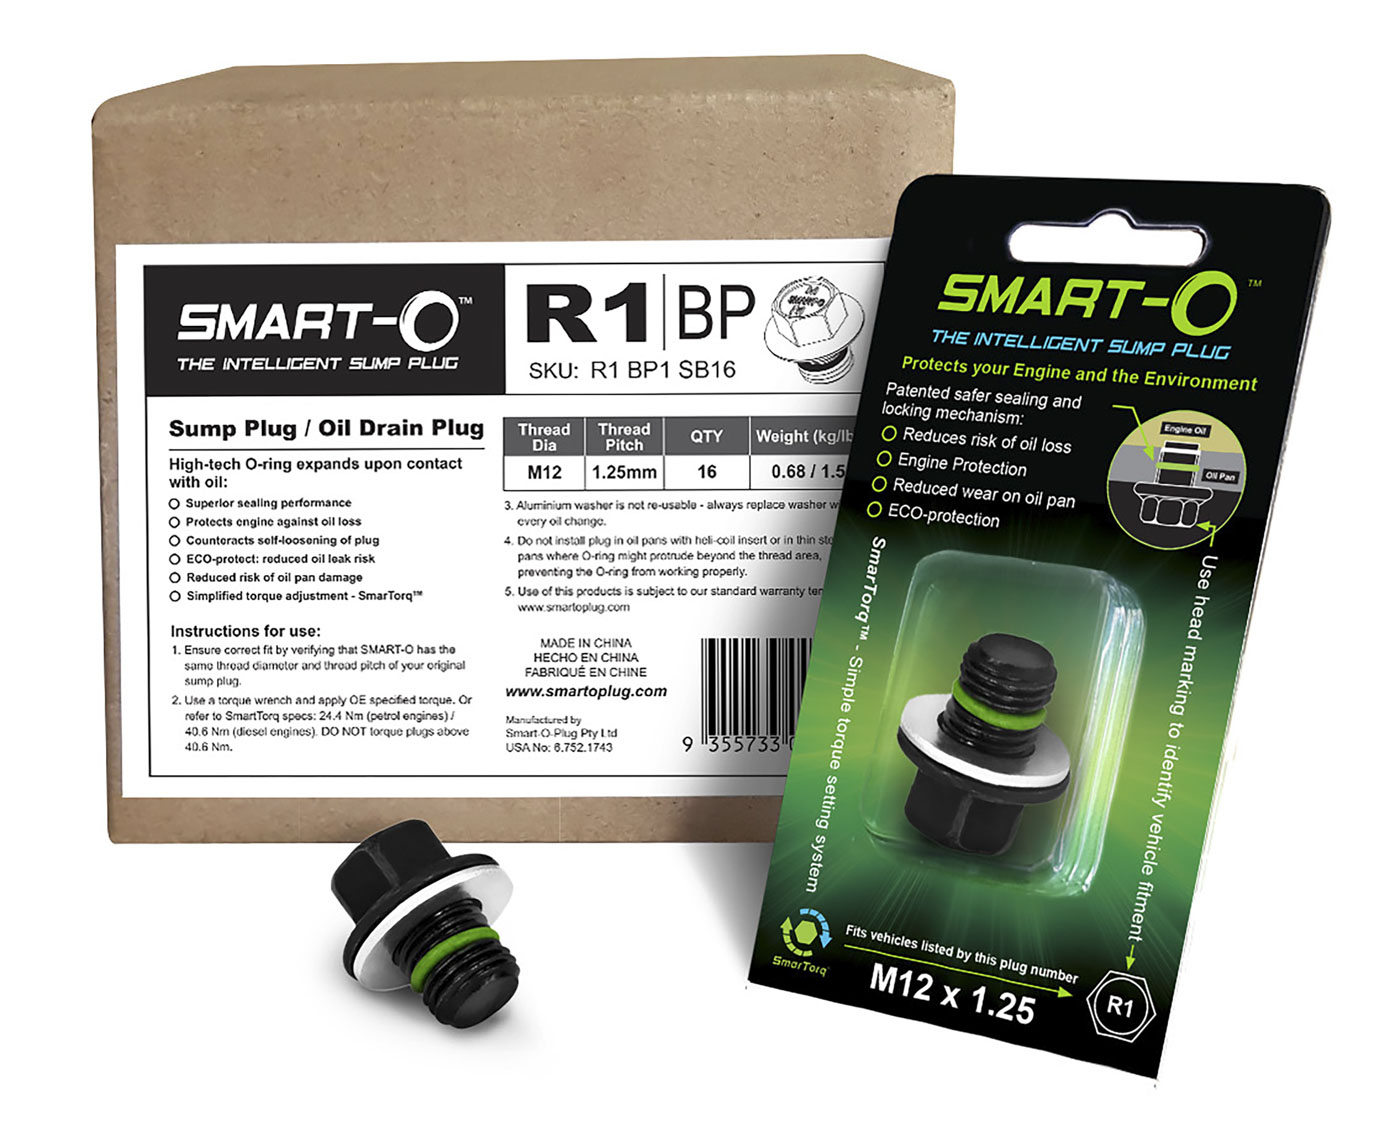 SMART-O Replenishment Box of 16 x R1BP1 Sump Plugs